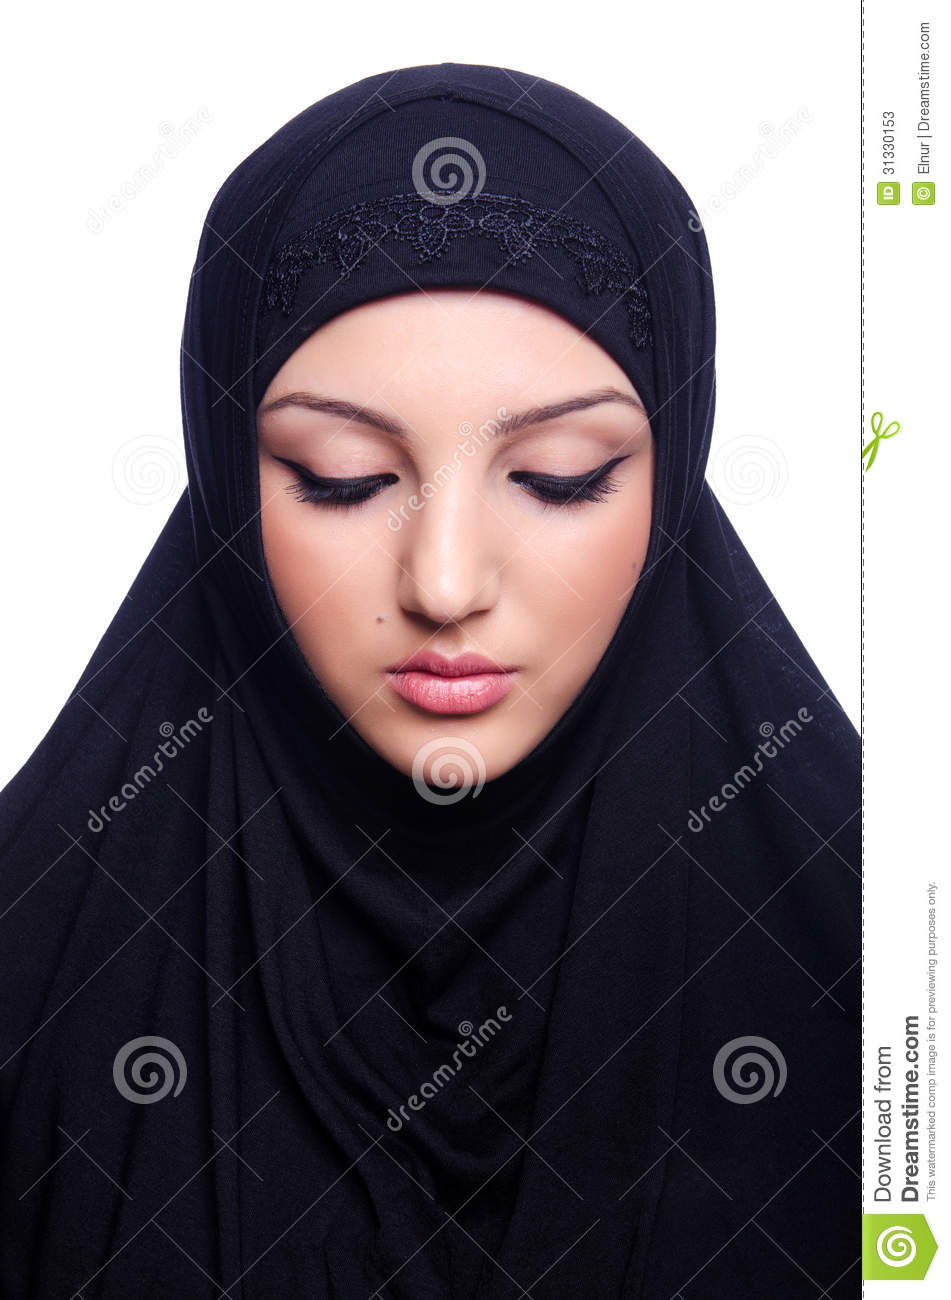 young muslim girl personals Welcome to our reviews of the backpage men looking for men  guys online chat shia muslim dating sites york personals dating  girl, country personals.